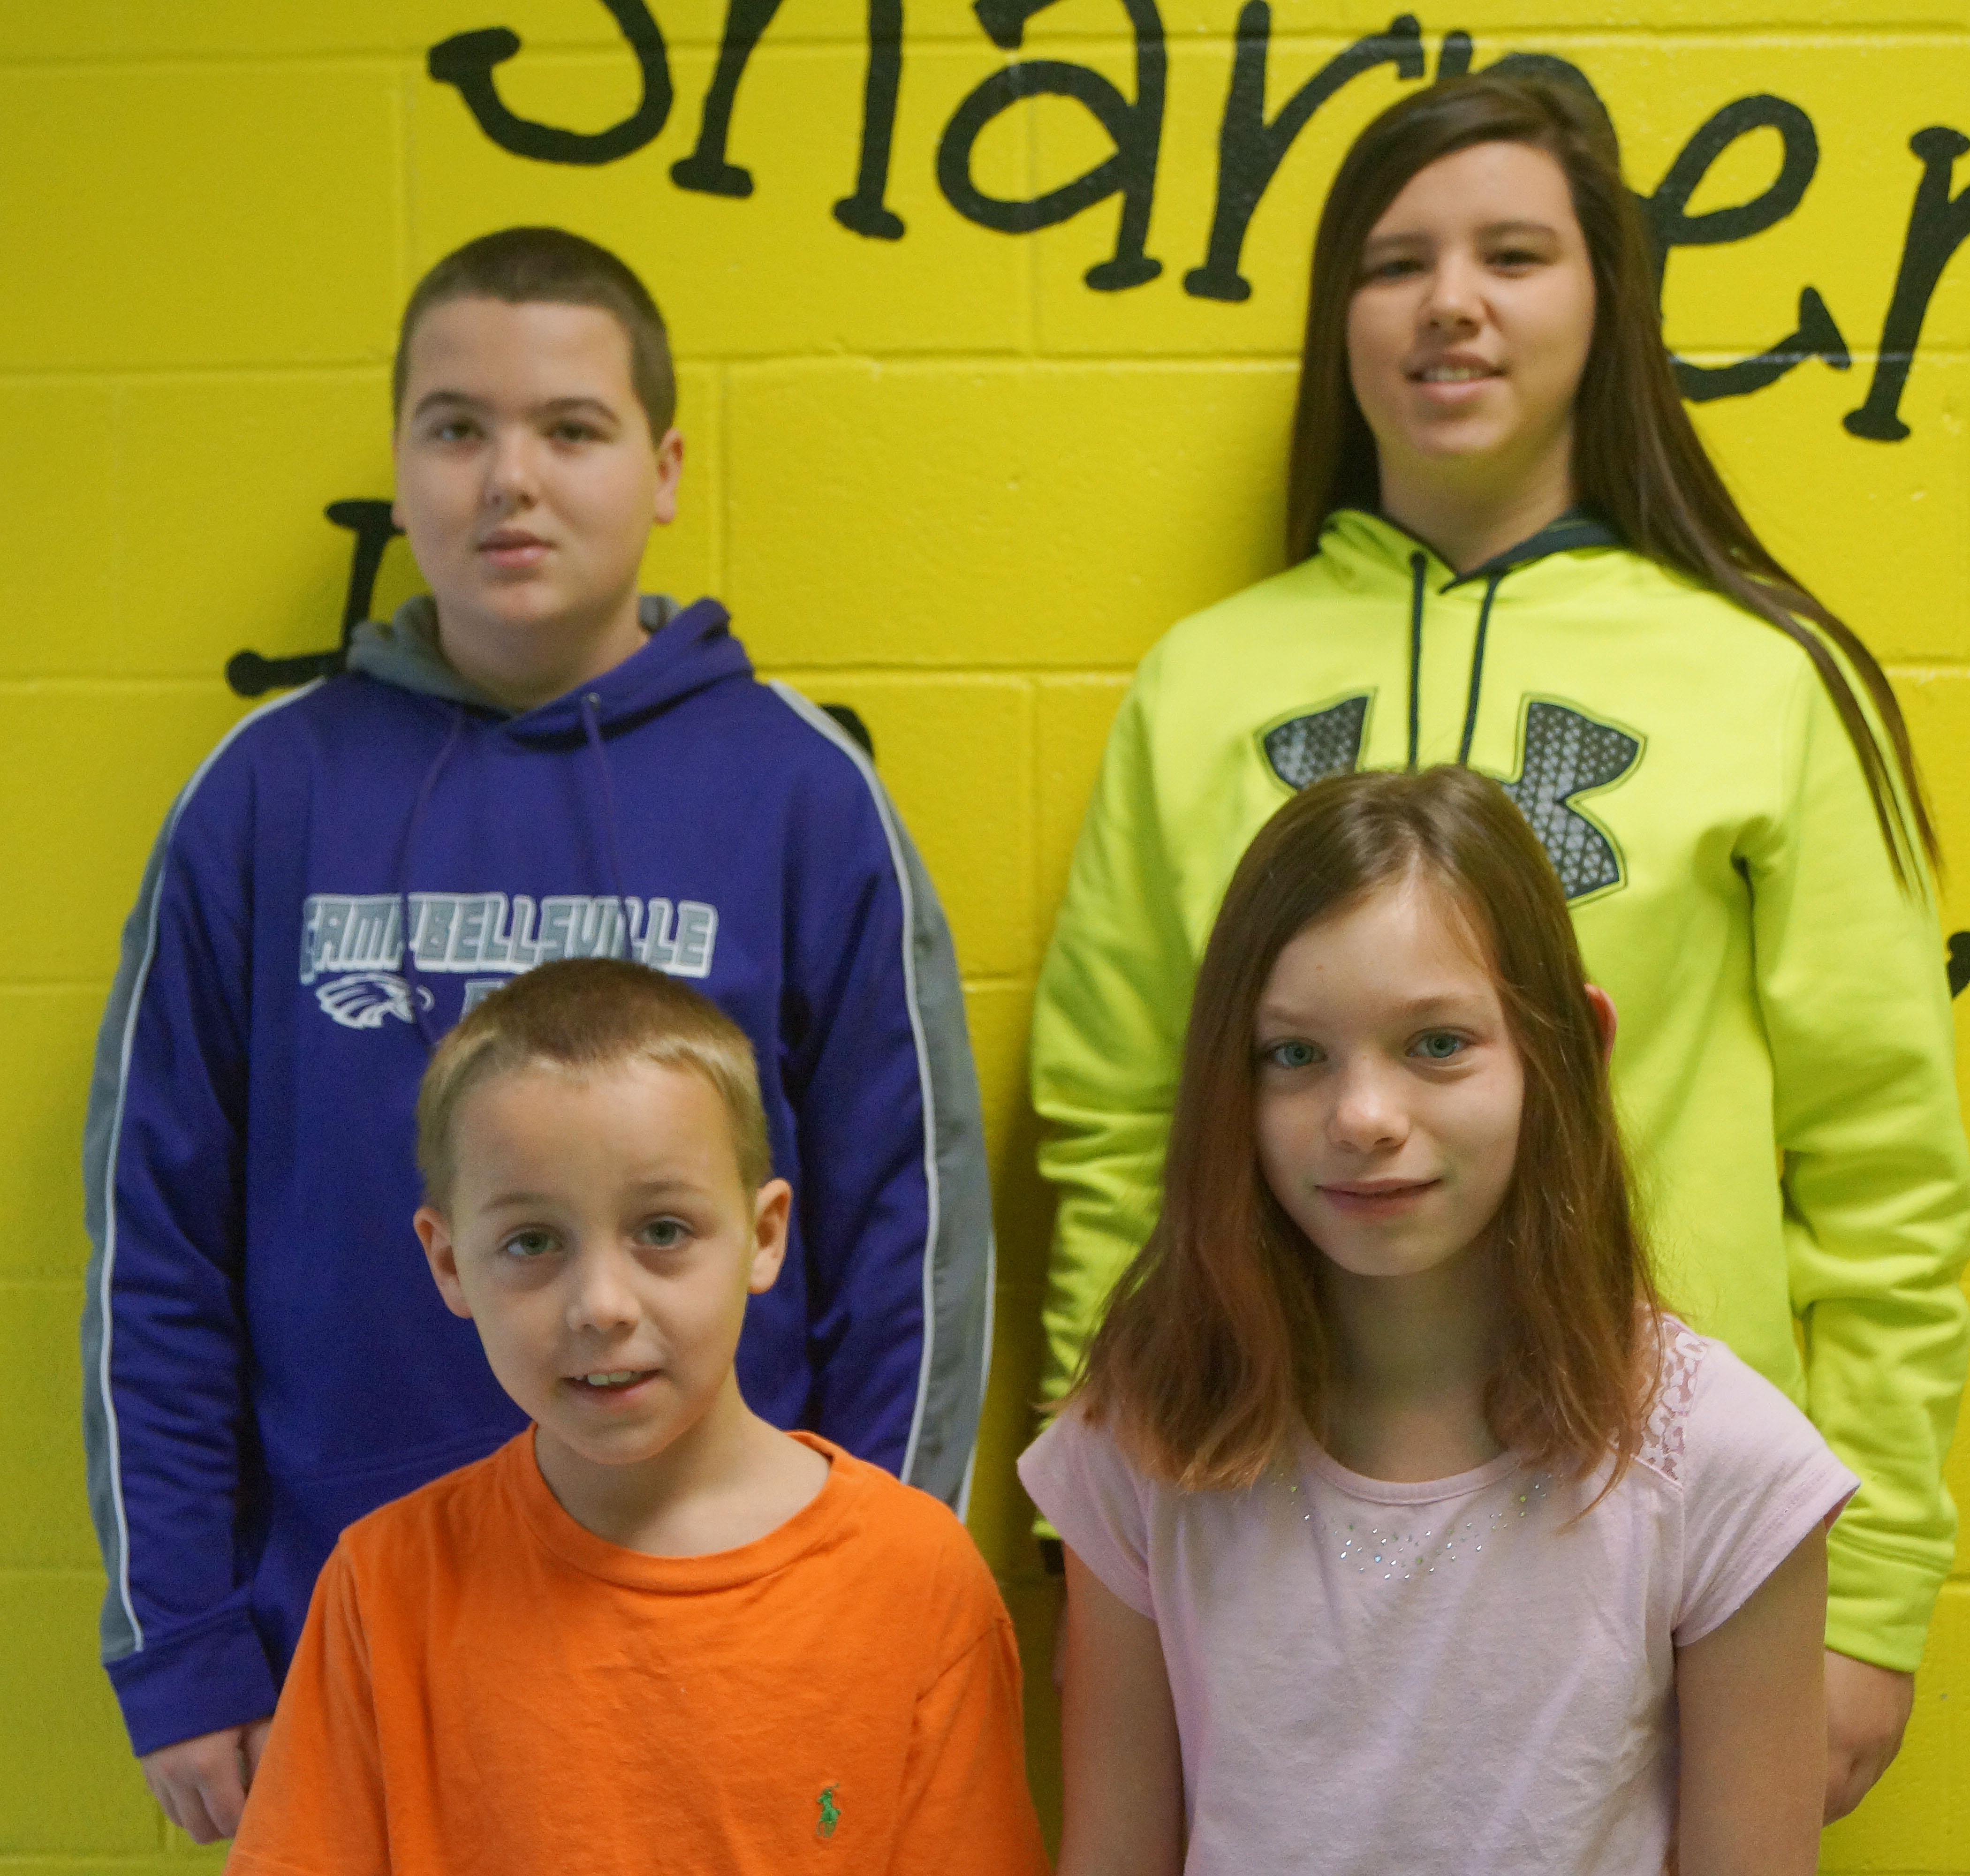 In front are fourth-grader Spencer Bates and fifth-grader Shaylee Cox. Back, seventh-grader Jack Sabo and eighth-grader Hannah Keith. Sixth-grader Hayden Jones isn't pictured.